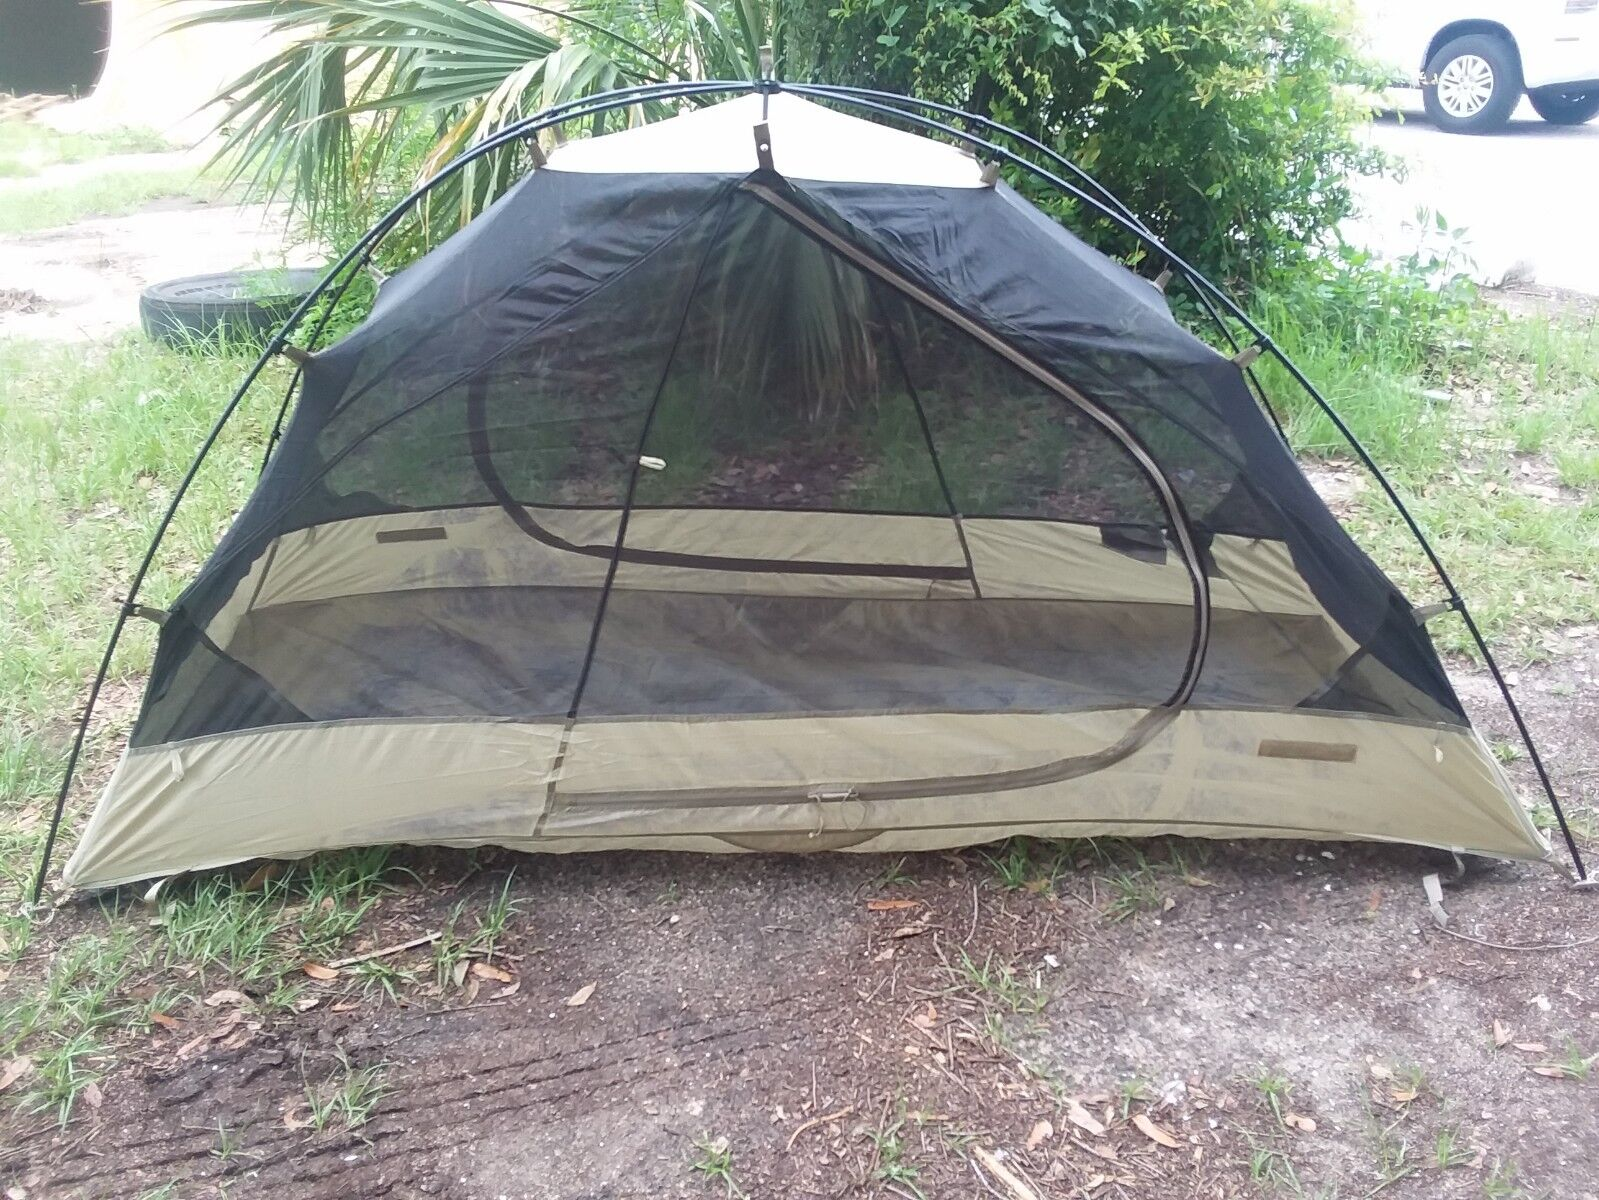 Litefighter Full Spectrum 1- One Man Combat Shelter/Tent Coyote Tan GRADE 3 FAIR